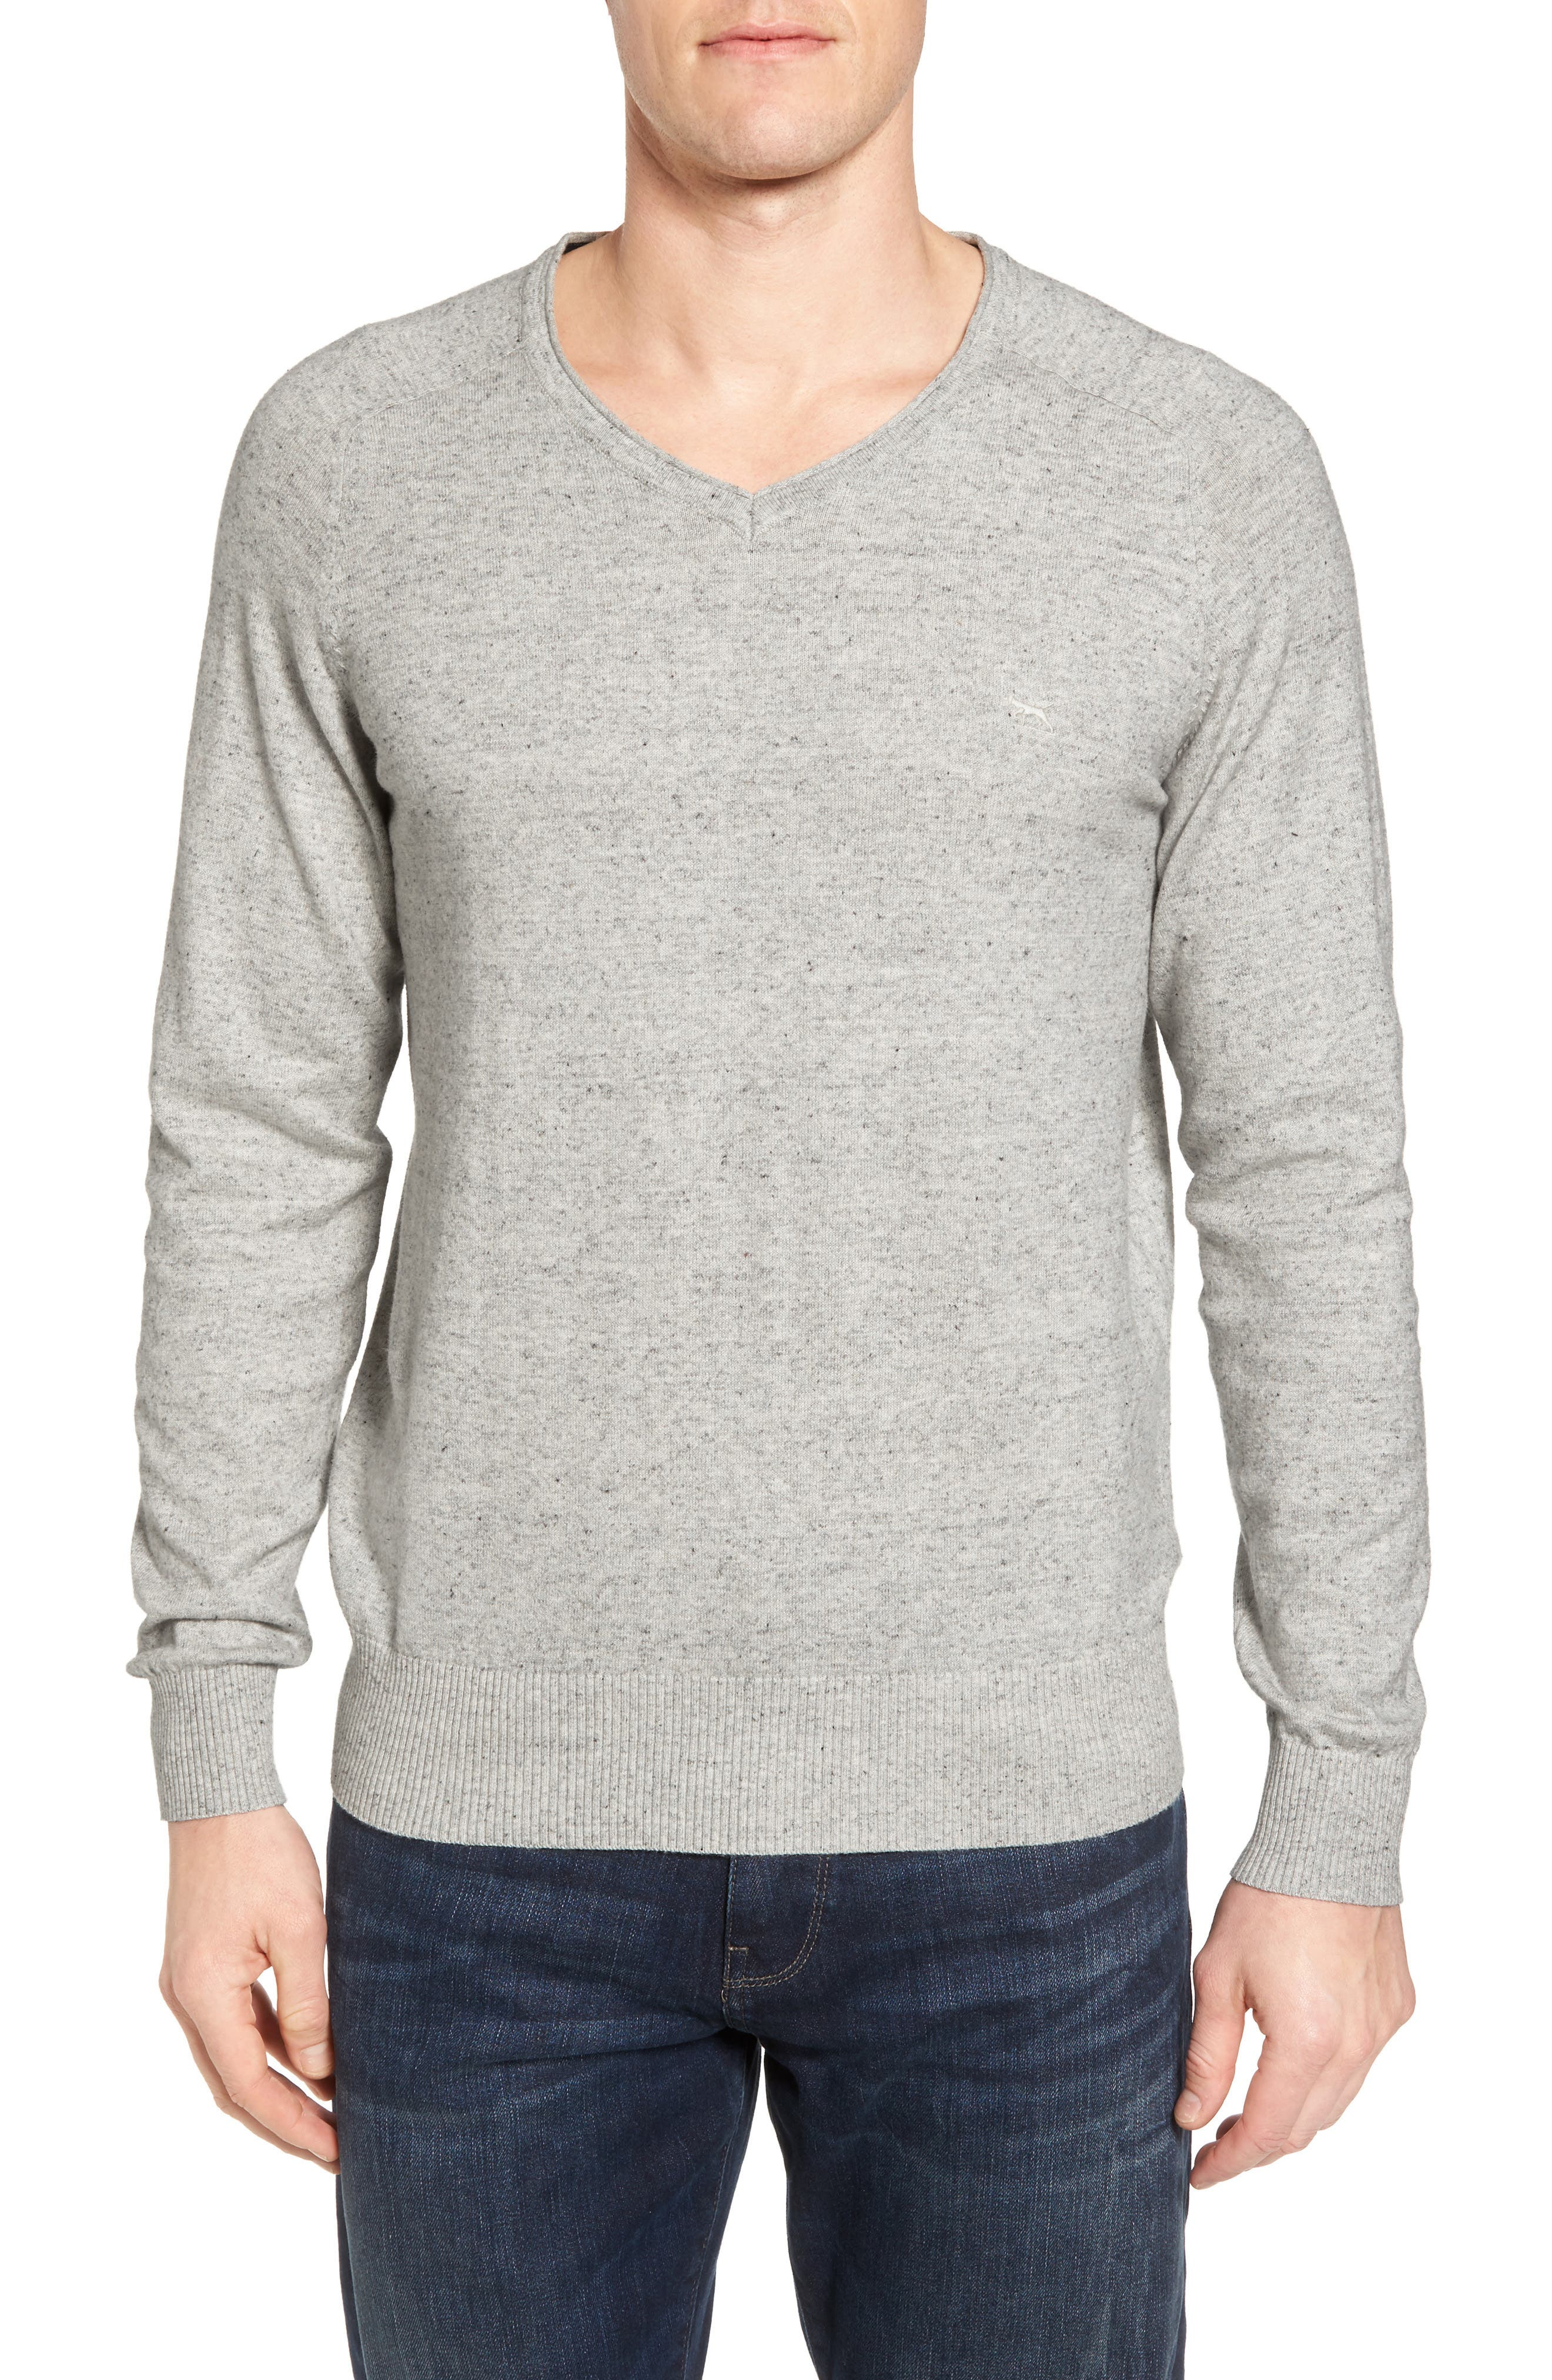 Arbors Cotton V-Neck Sweater,                         Main,                         color, Oatmeal